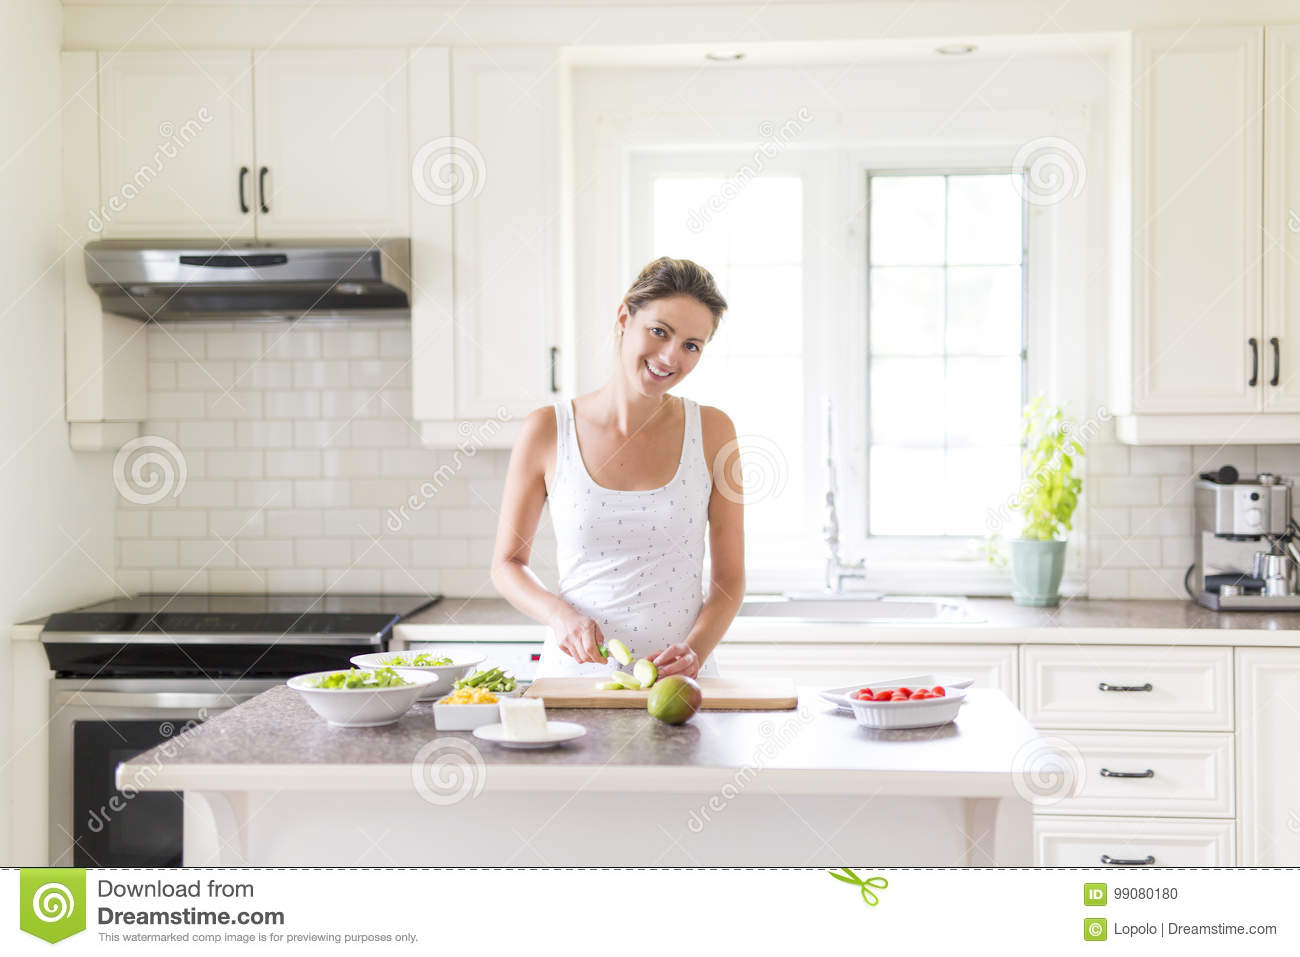 Gorgeous Woman Doing A Salad In Her Kitchen Stock Photo - Image of ...